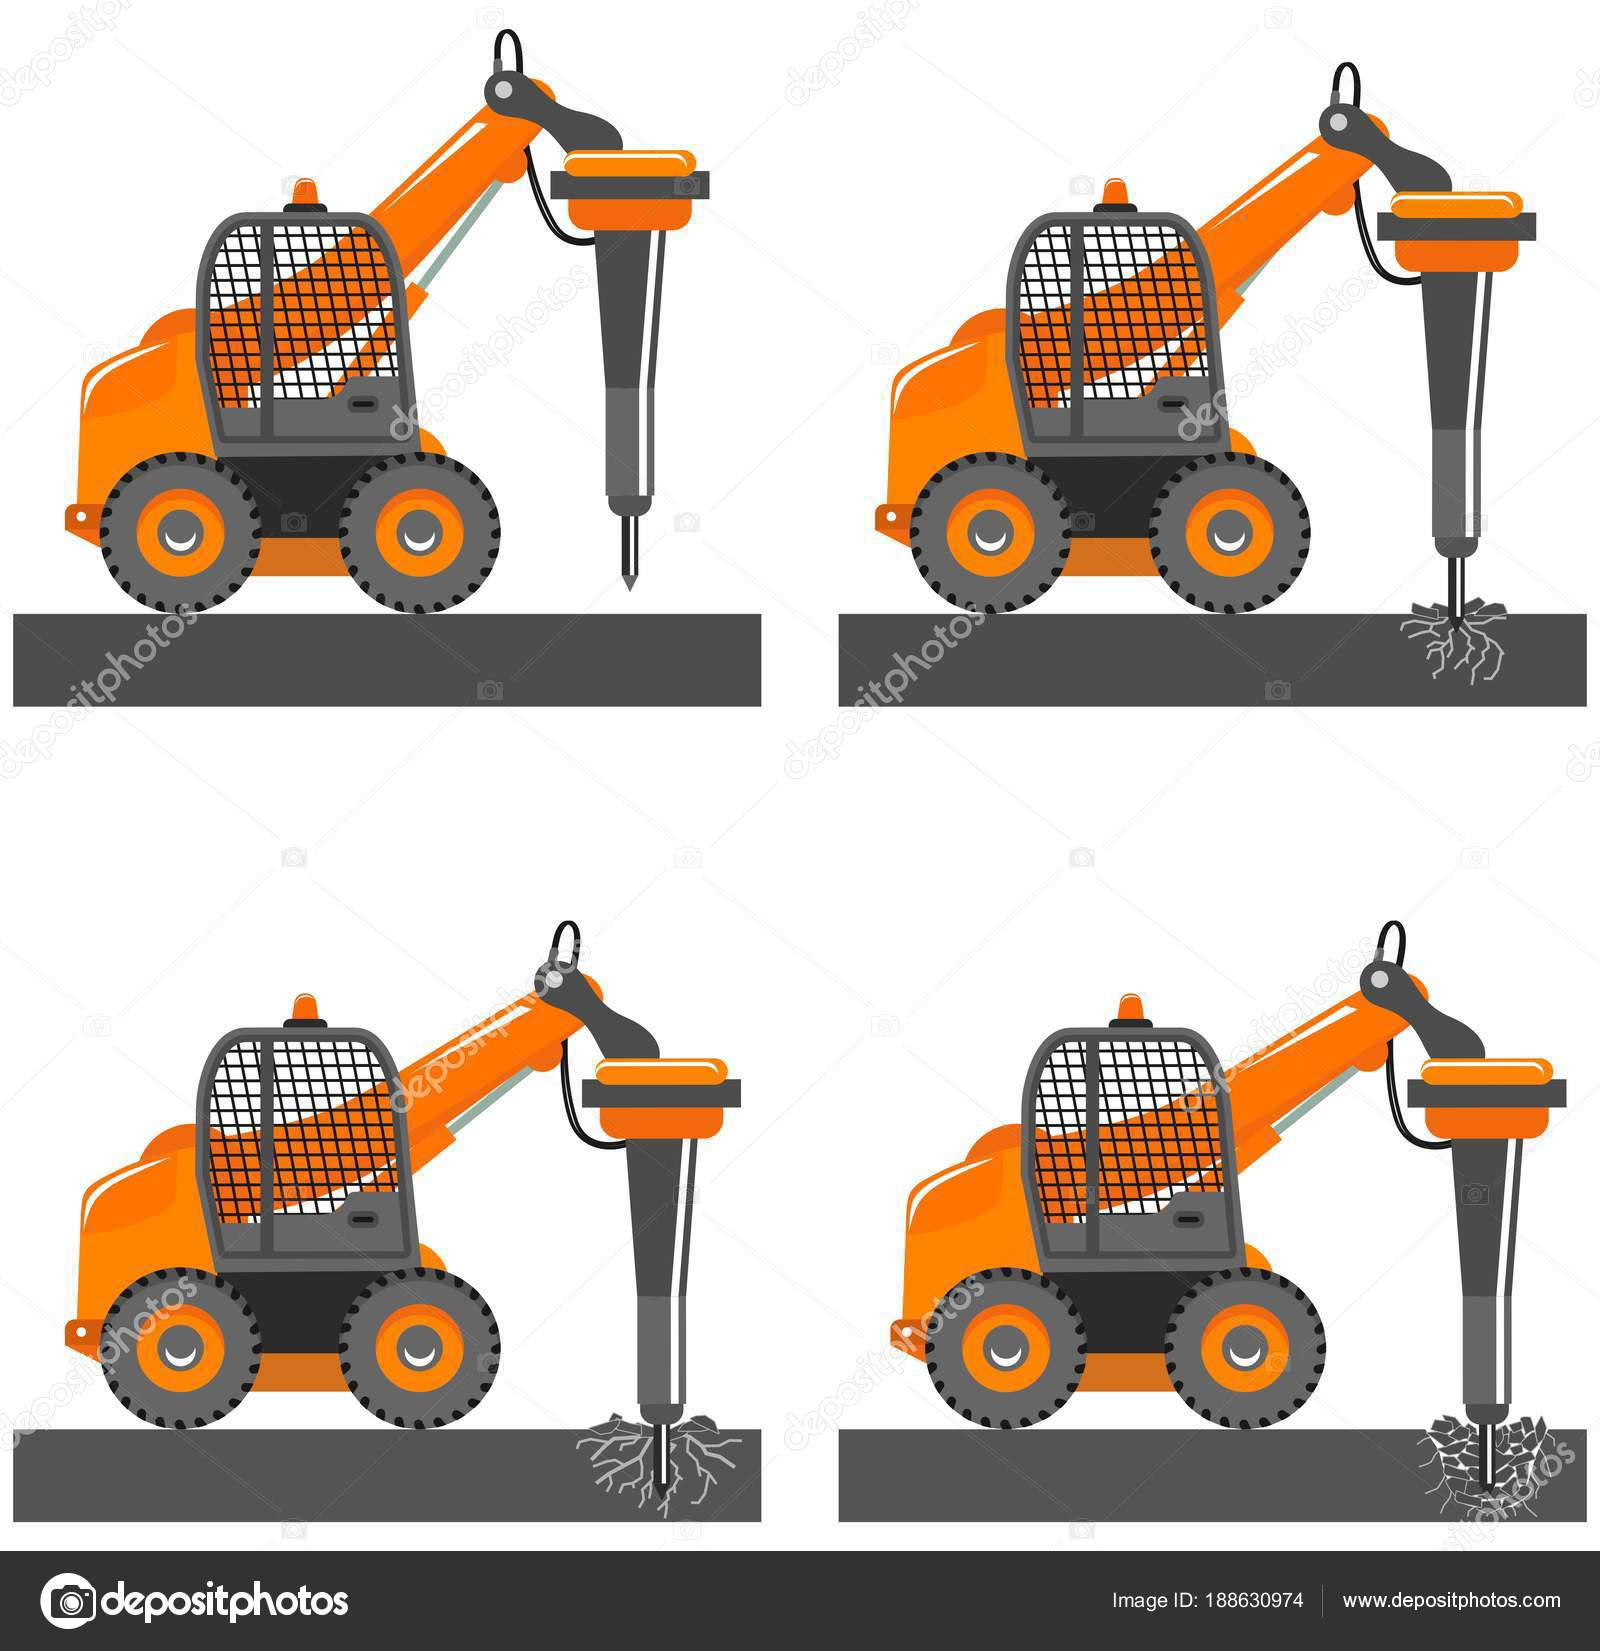 Detailed Illustration Of Car With Hammer Mini Excavator With